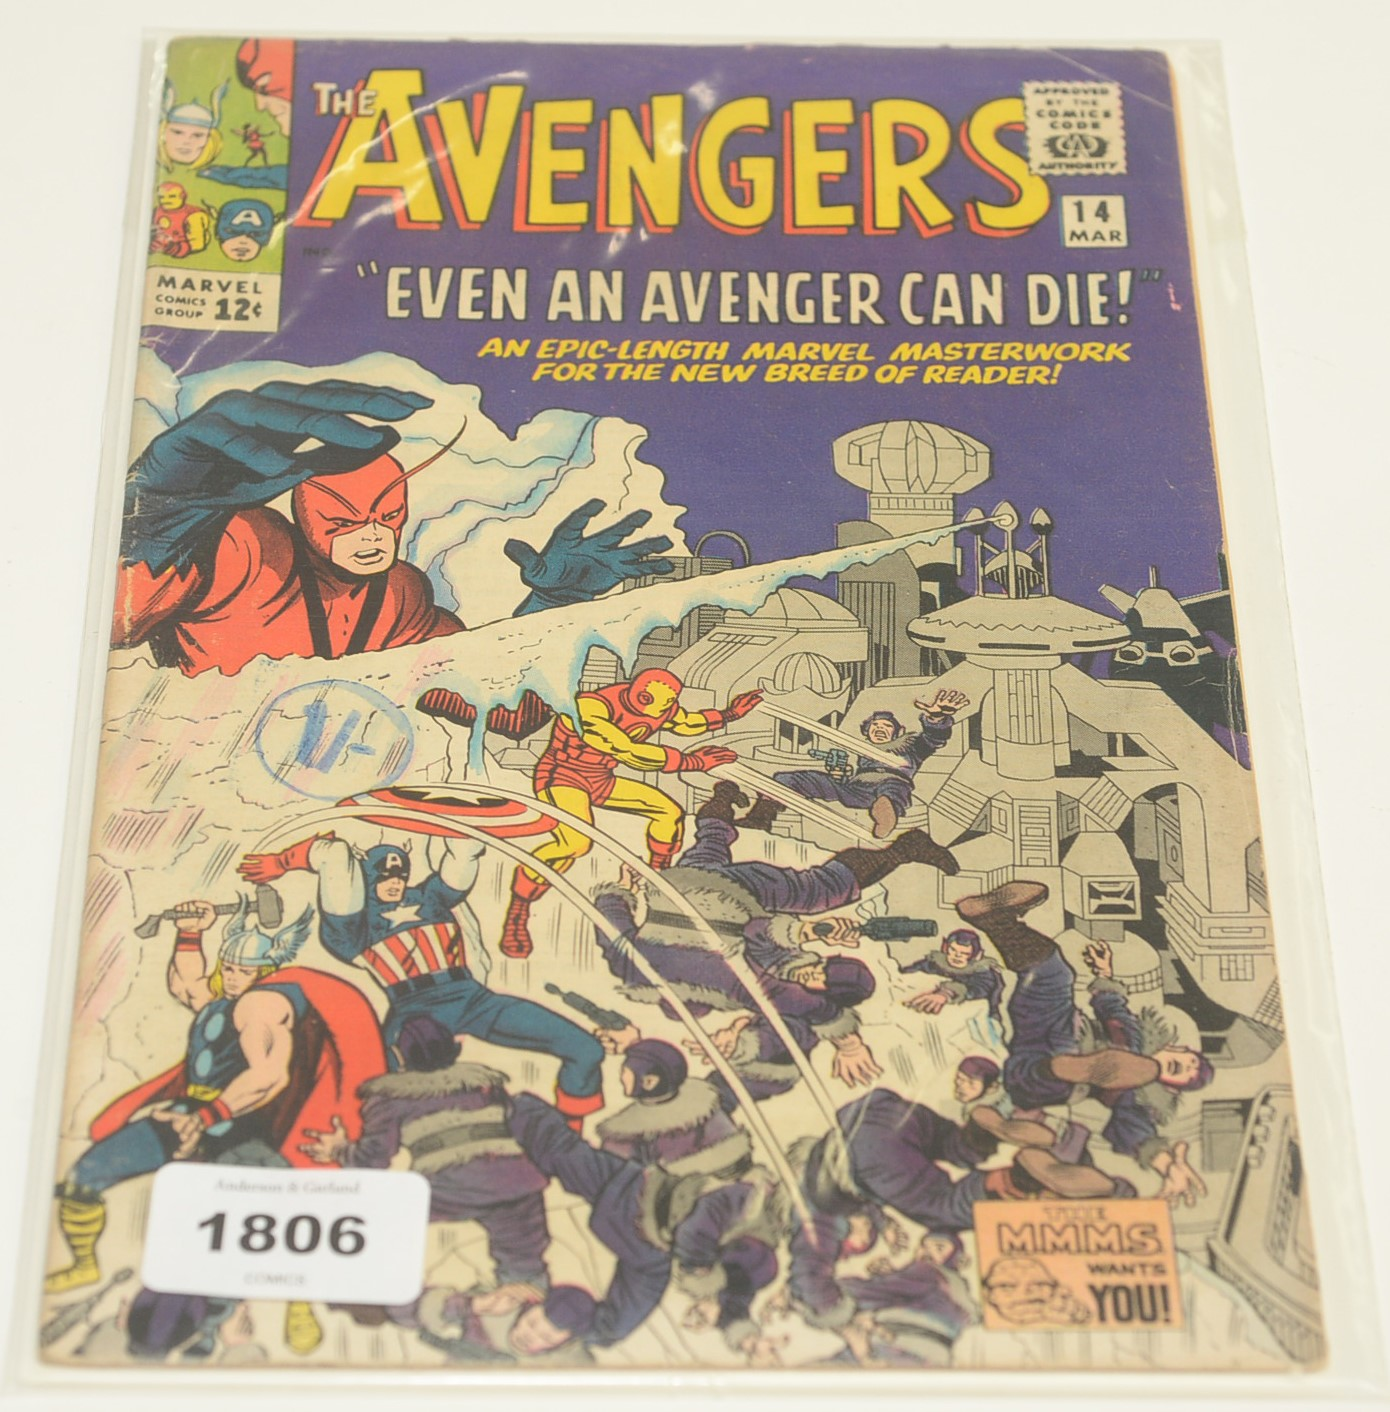 The Avengers No's. 3, 5, 11, 13, 14, 17 and 18 - Image 5 of 7